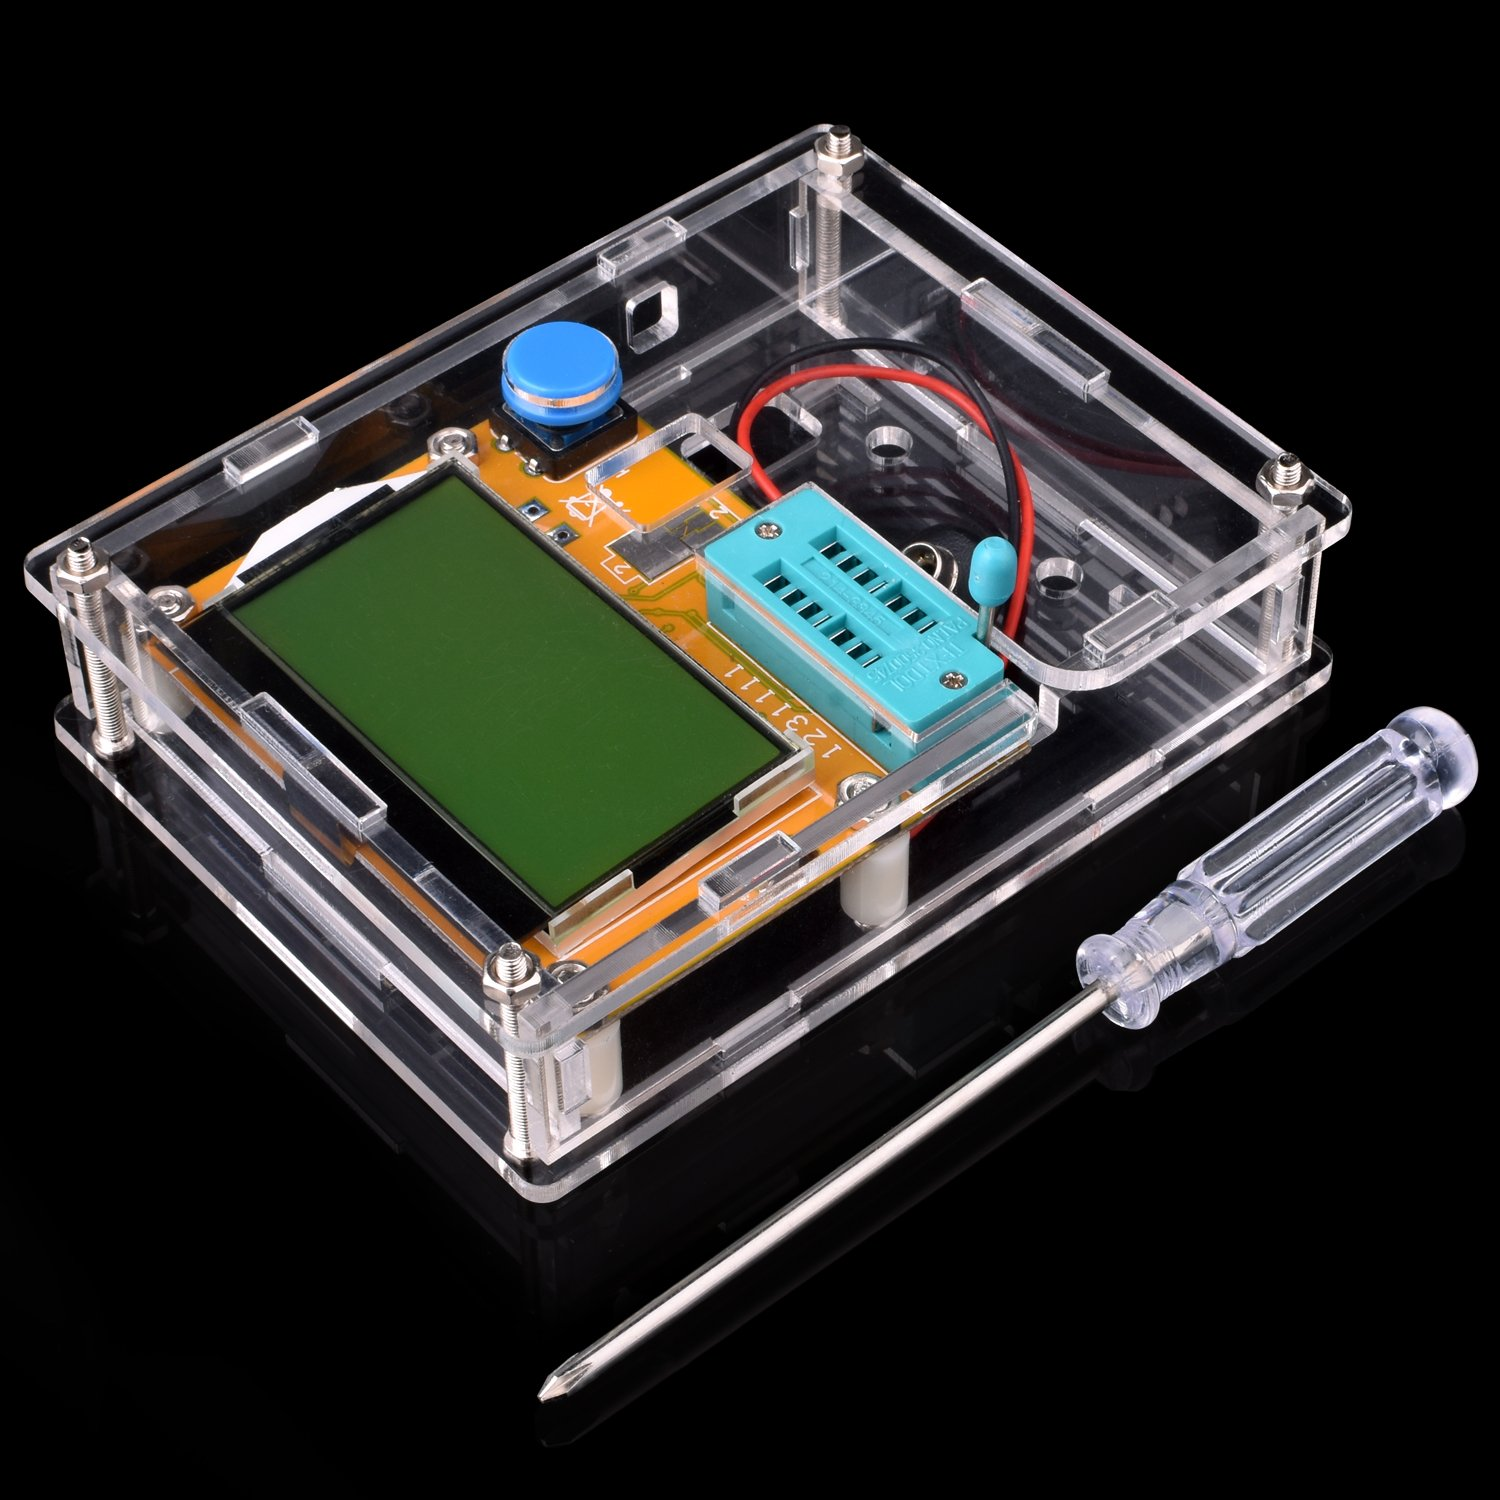 Multifunction Meter DIY kit, kuman Mega 328 Graphic transistor Tester, NPN PNP Diodes Triode Capacitor ESR SCR MOSFET Resistor Inductance LCD Display Checker with case and screwdriver K77 by Kuman (Image #3)